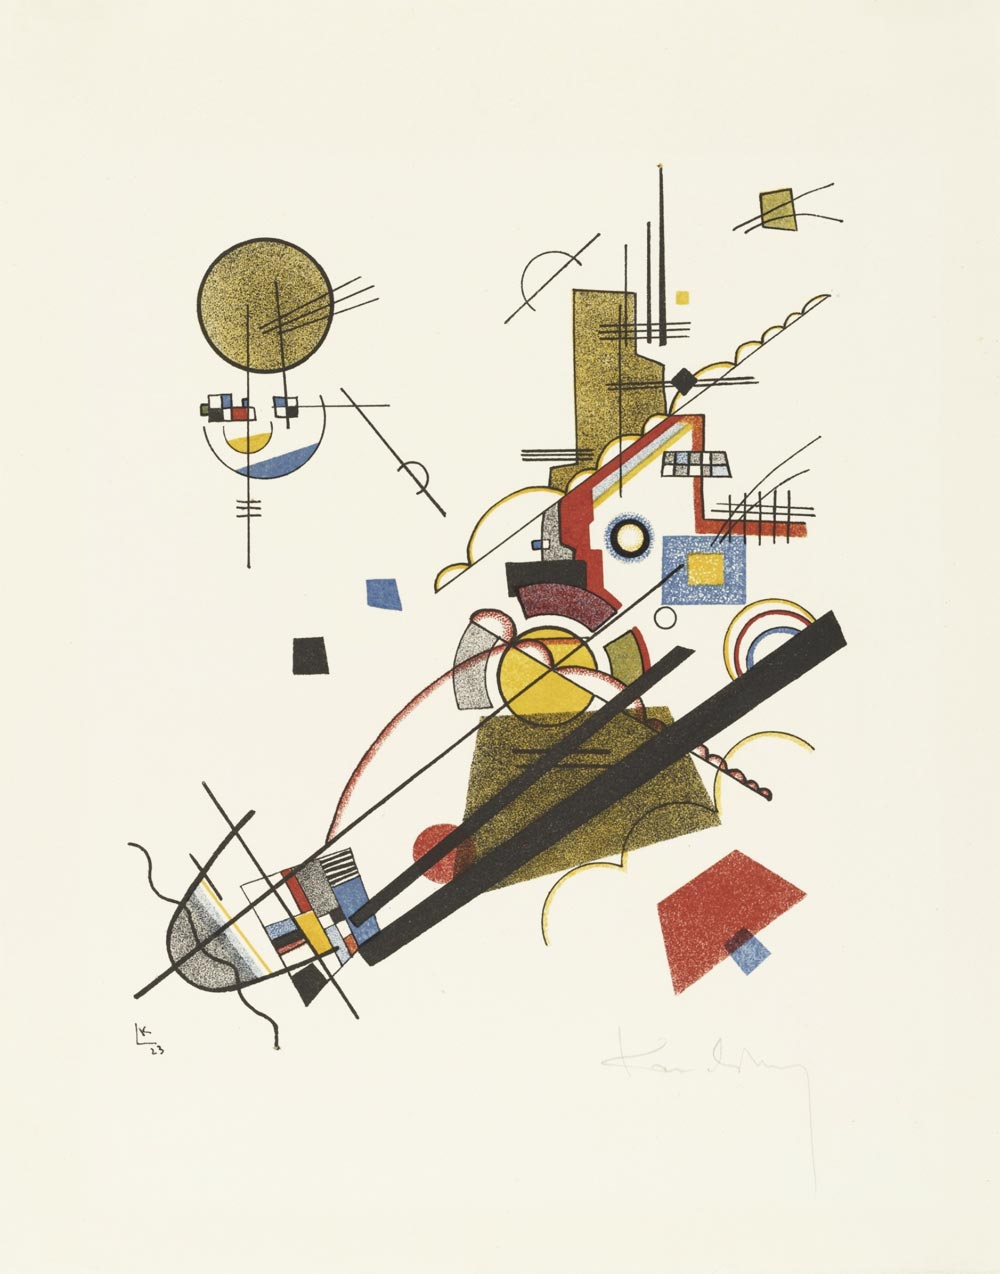 Joyous Ascent by Vasily Kandinsky (1923) from Masters' Portfolio of the Staatliches Bauhaus